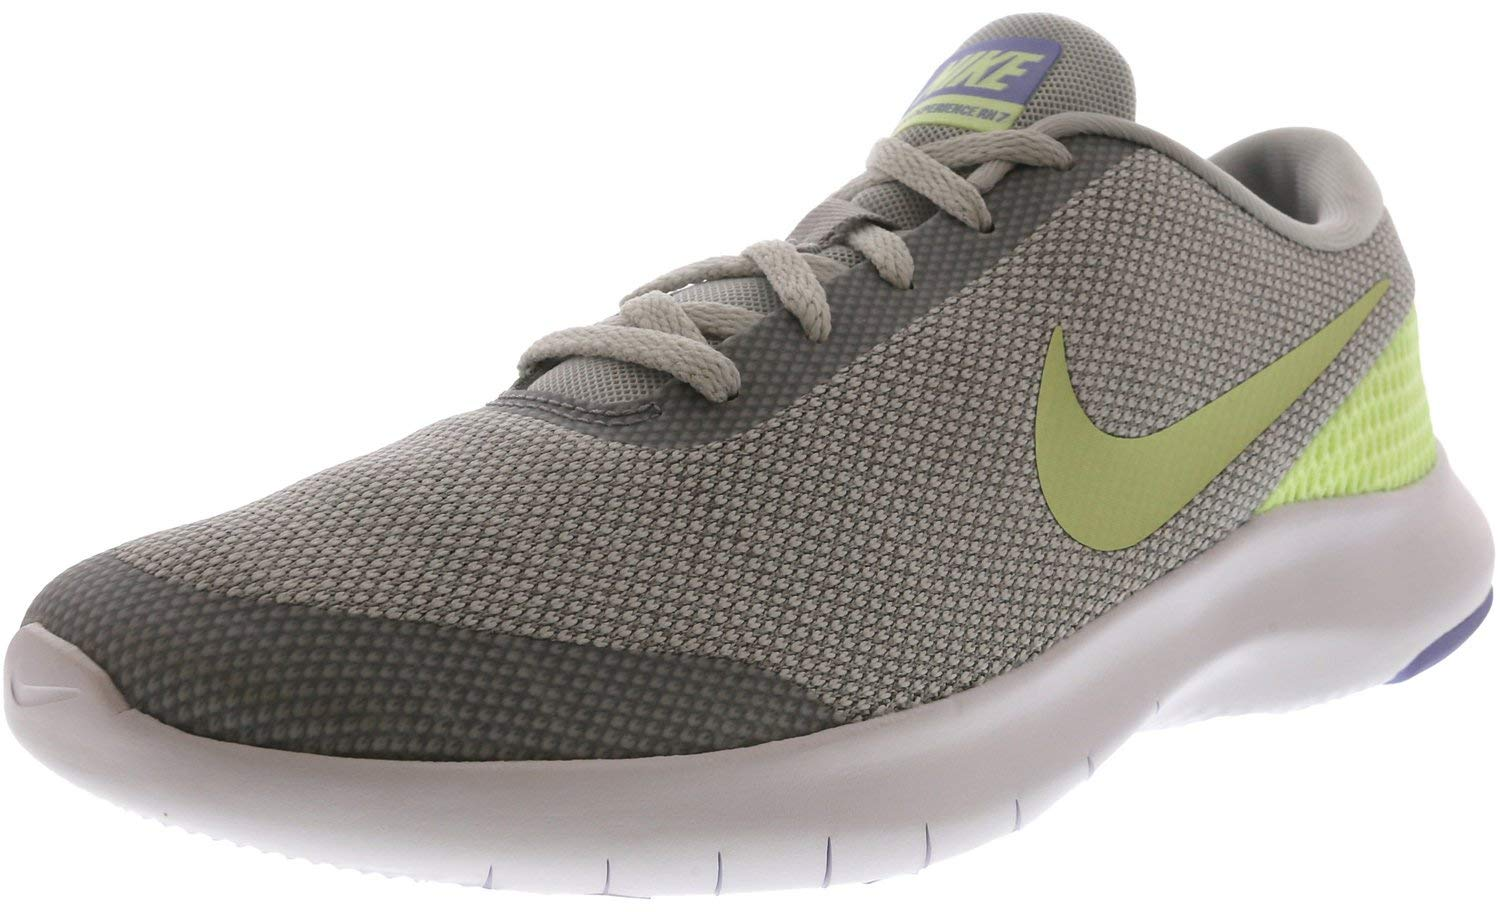 20bb85e2e815 Galleon - Nike Womens Flex Experience Rn 7 Fabric Hight Top Lace Up ...